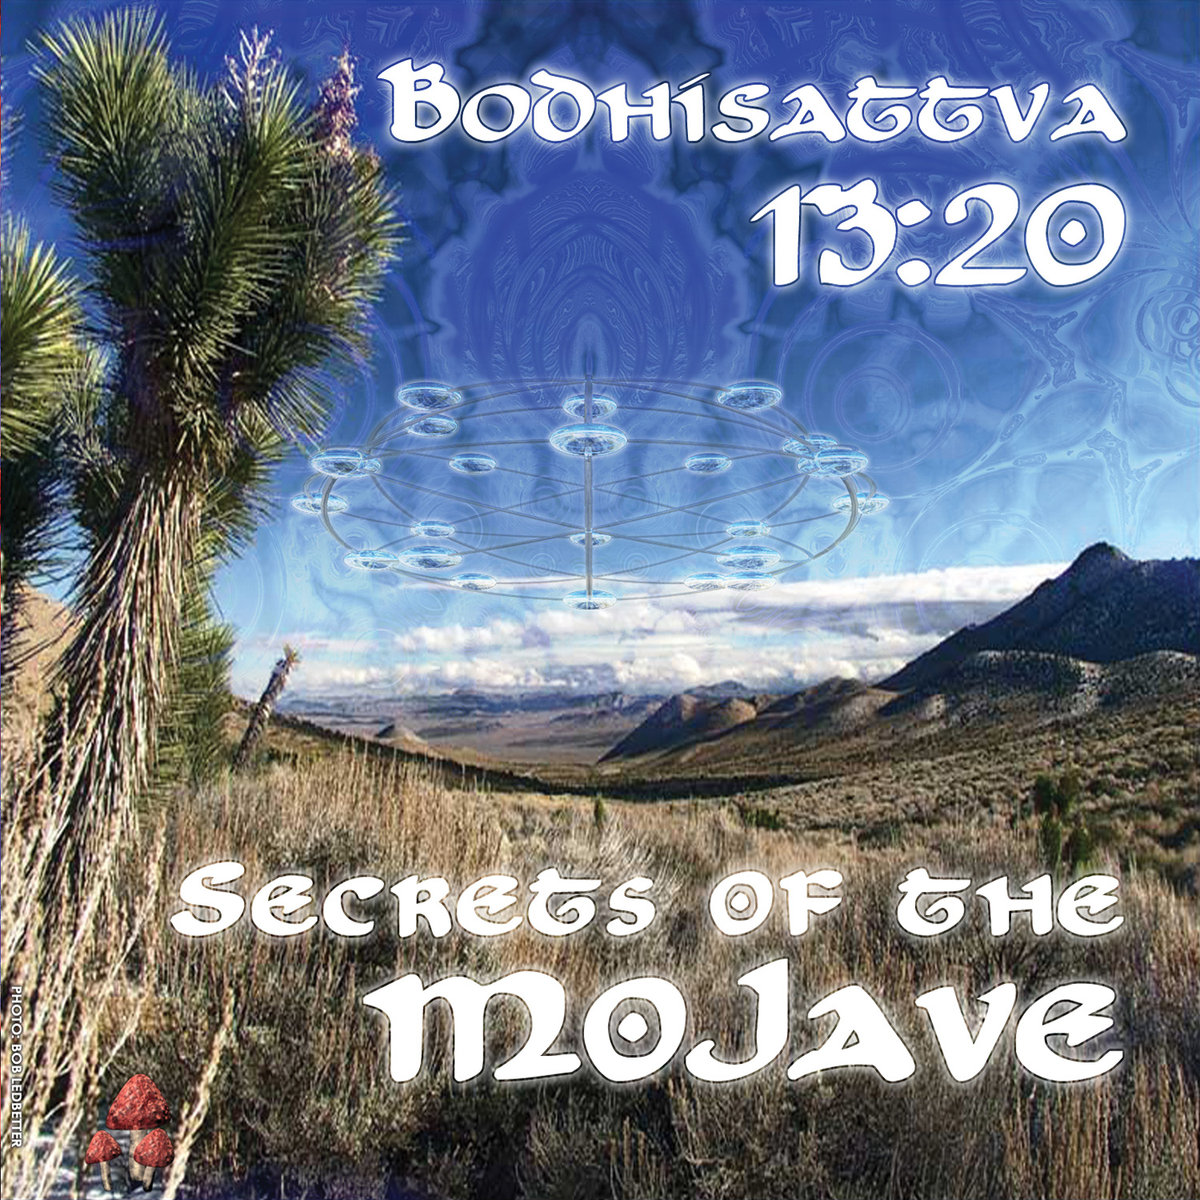 Bodhisattva 13:20 - Patient Tolerance @ 'Secrets of the Mojave' album (electronic, goa)